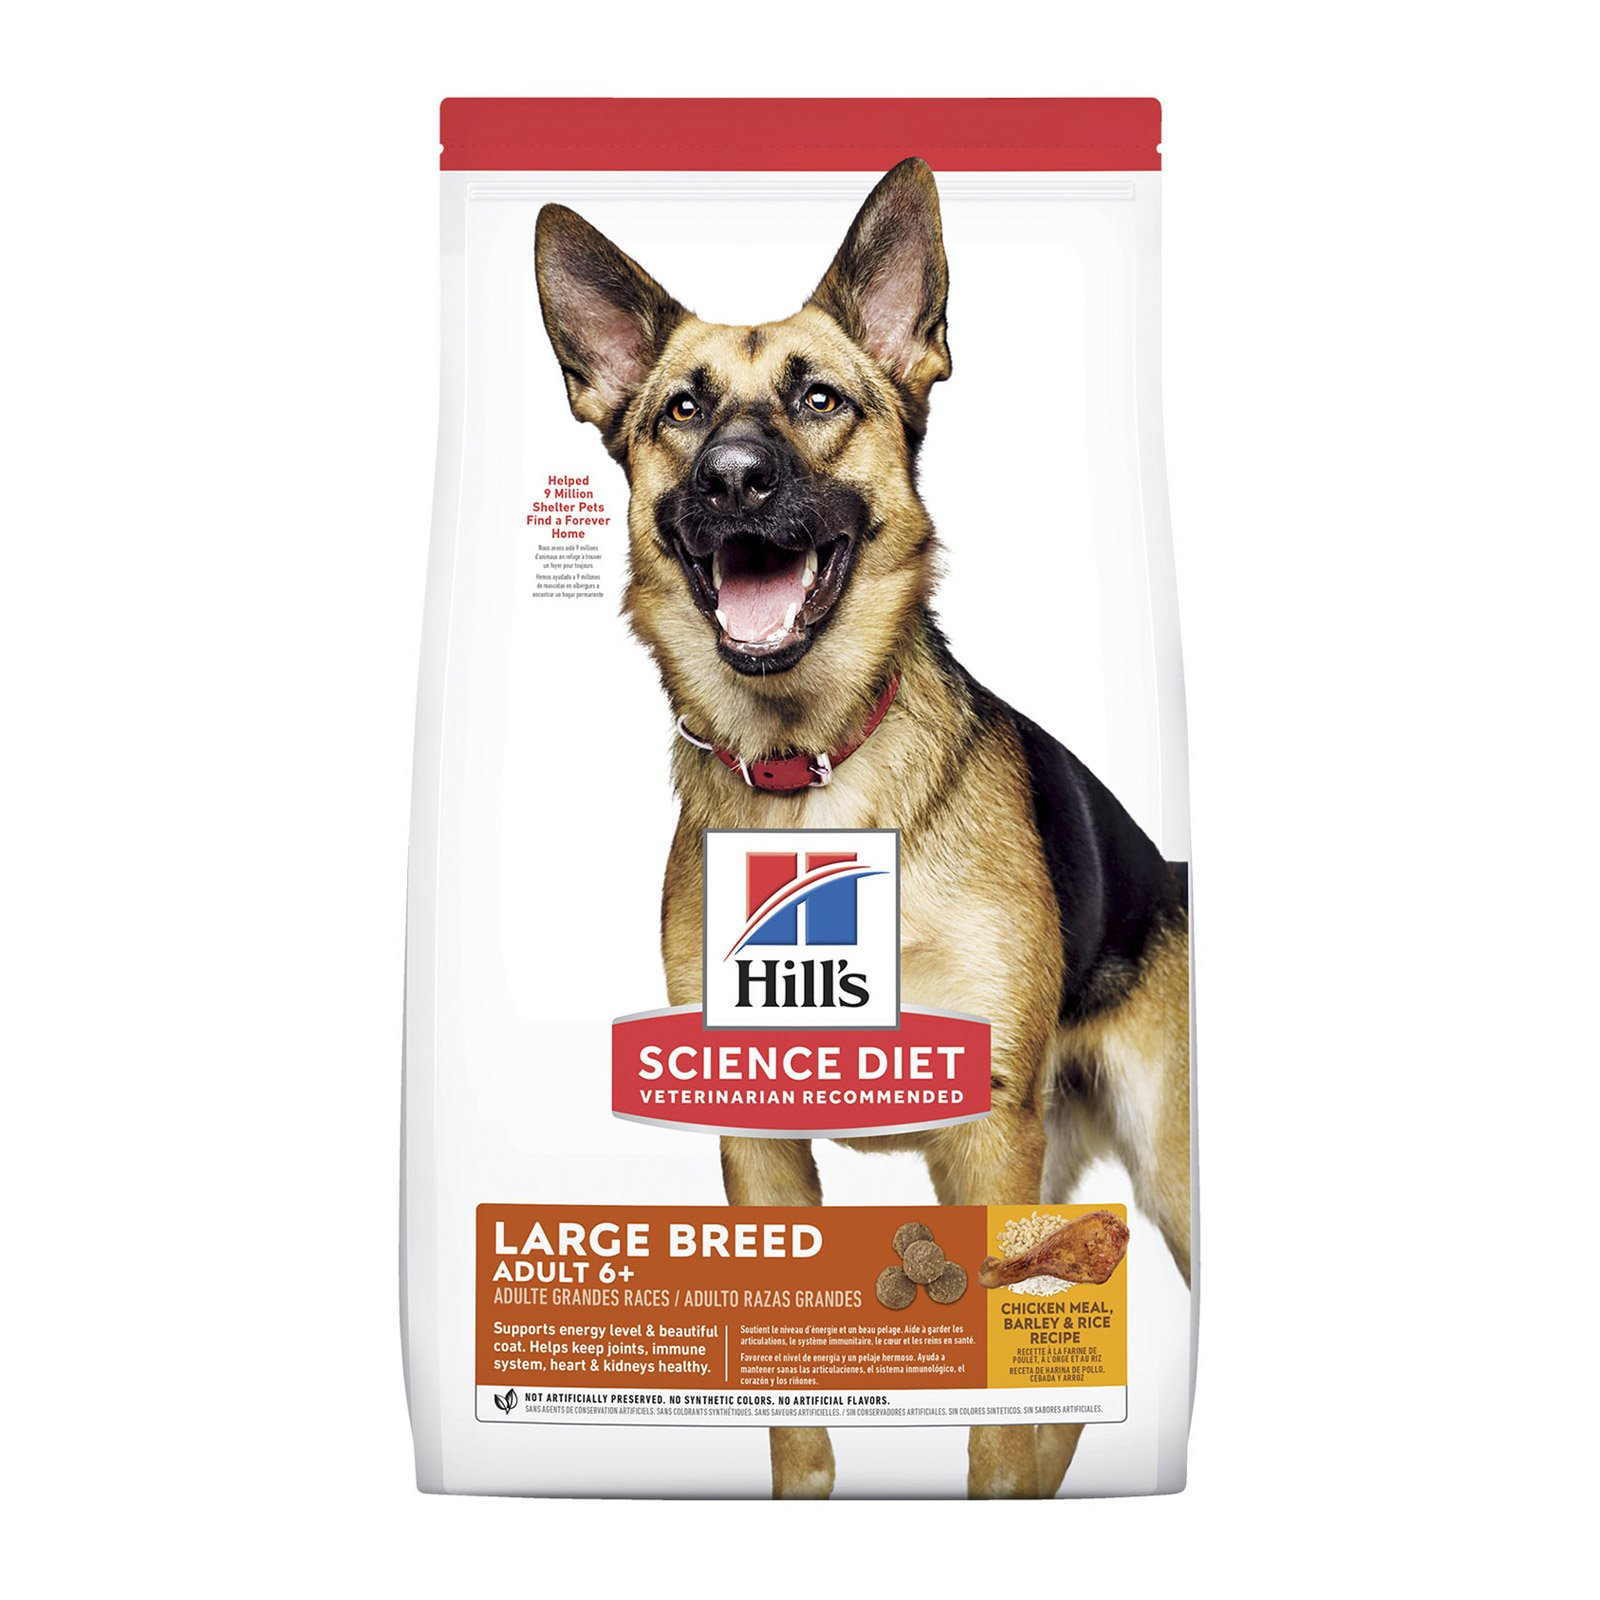 Hill's Science Diet Adult 6+ Large Breed Chicken, Barley & Rice Dry Dog Food